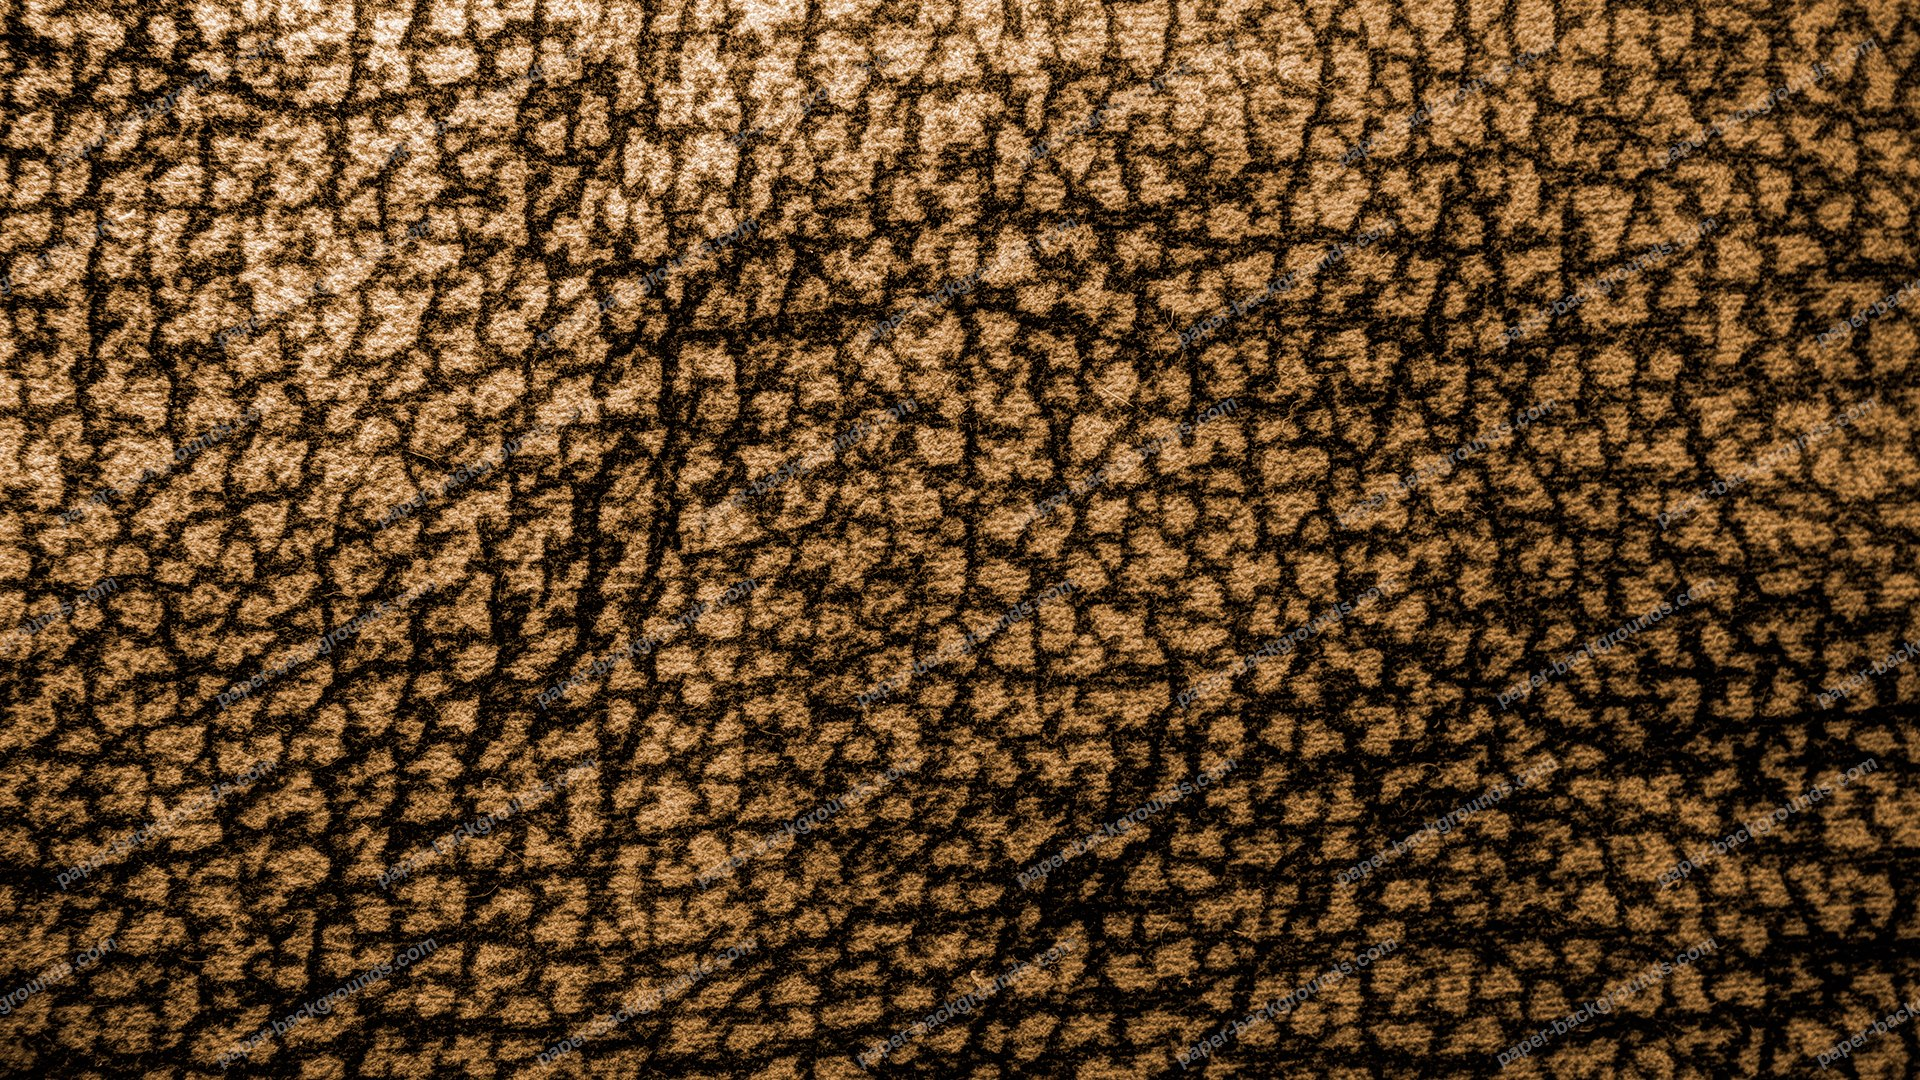 Brown Leopard Pattern Carpet HD 1920 x 1080p